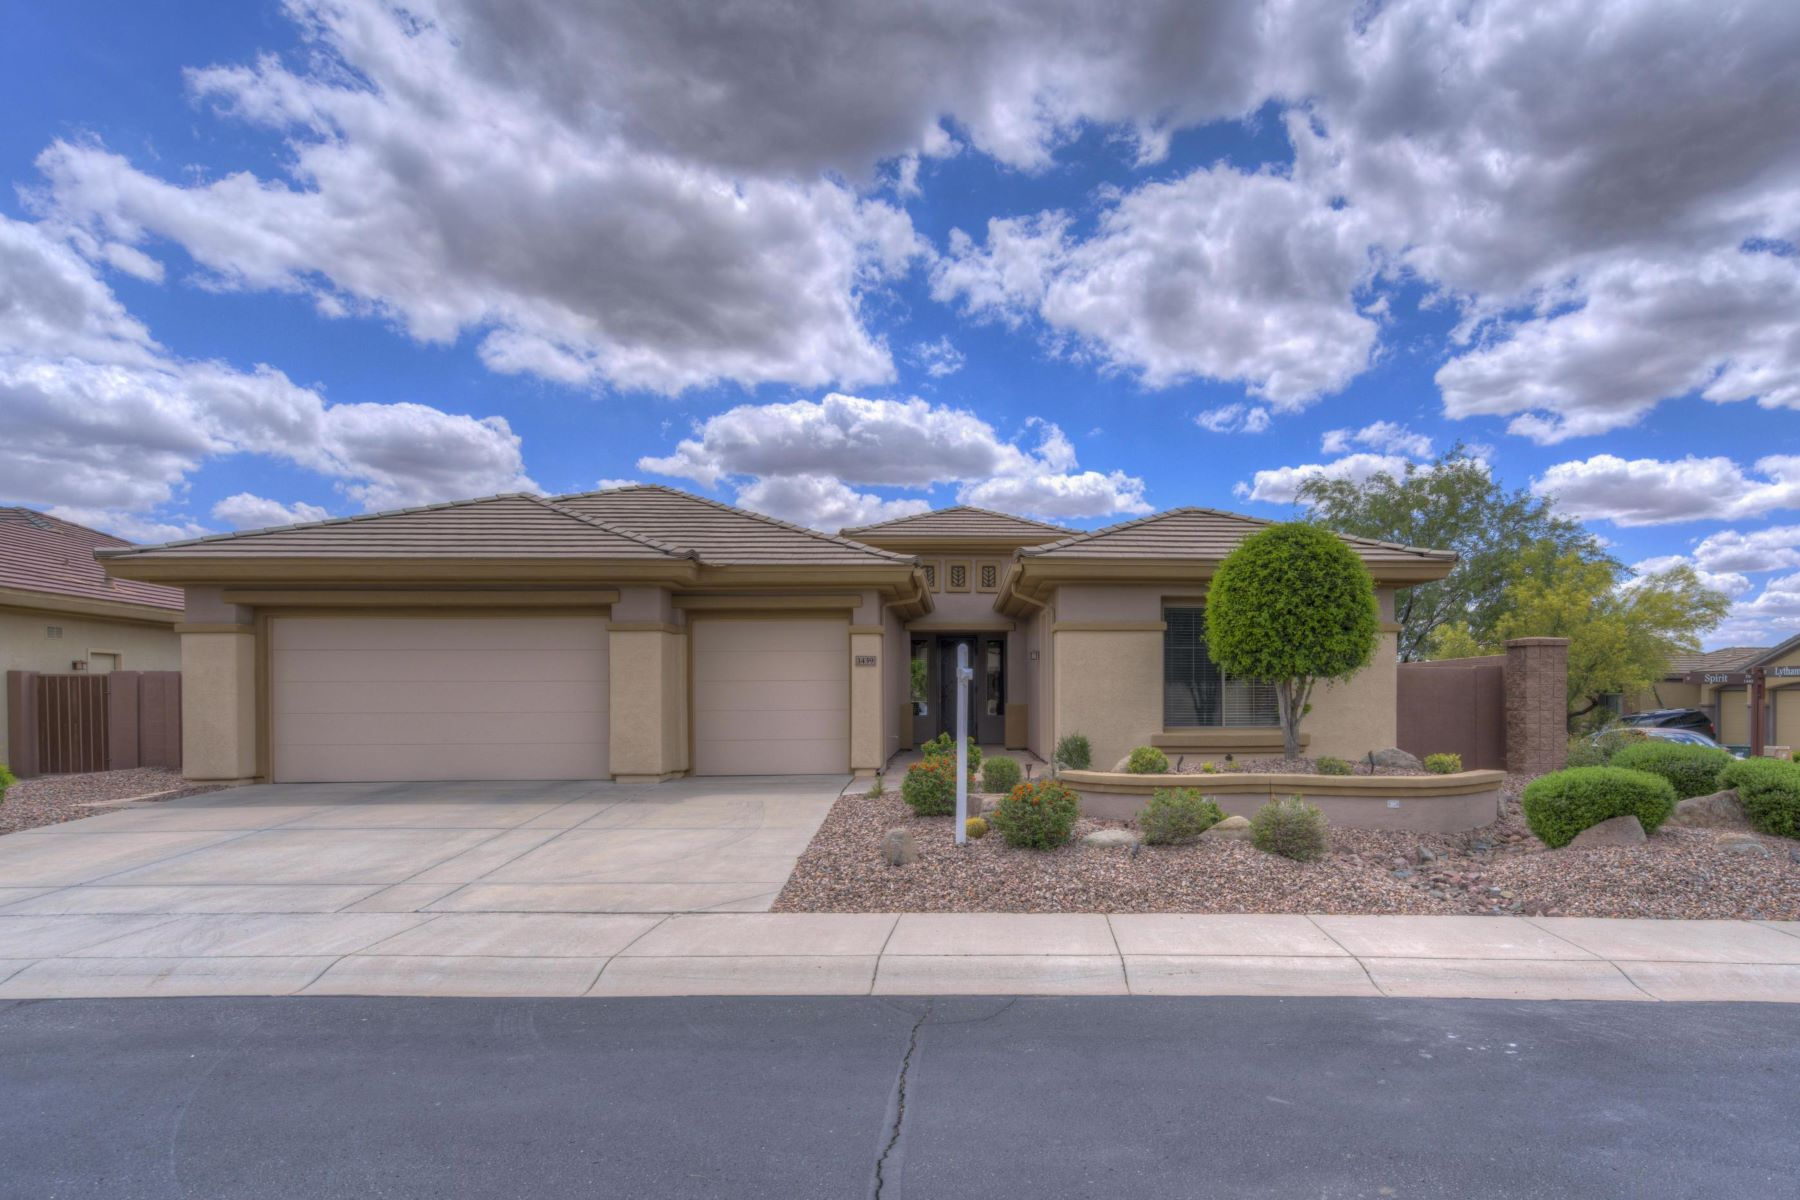 single family homes for Active at Anthem Country Club 1439 W SPIRIT DR Anthem, Arizona 85086 United States